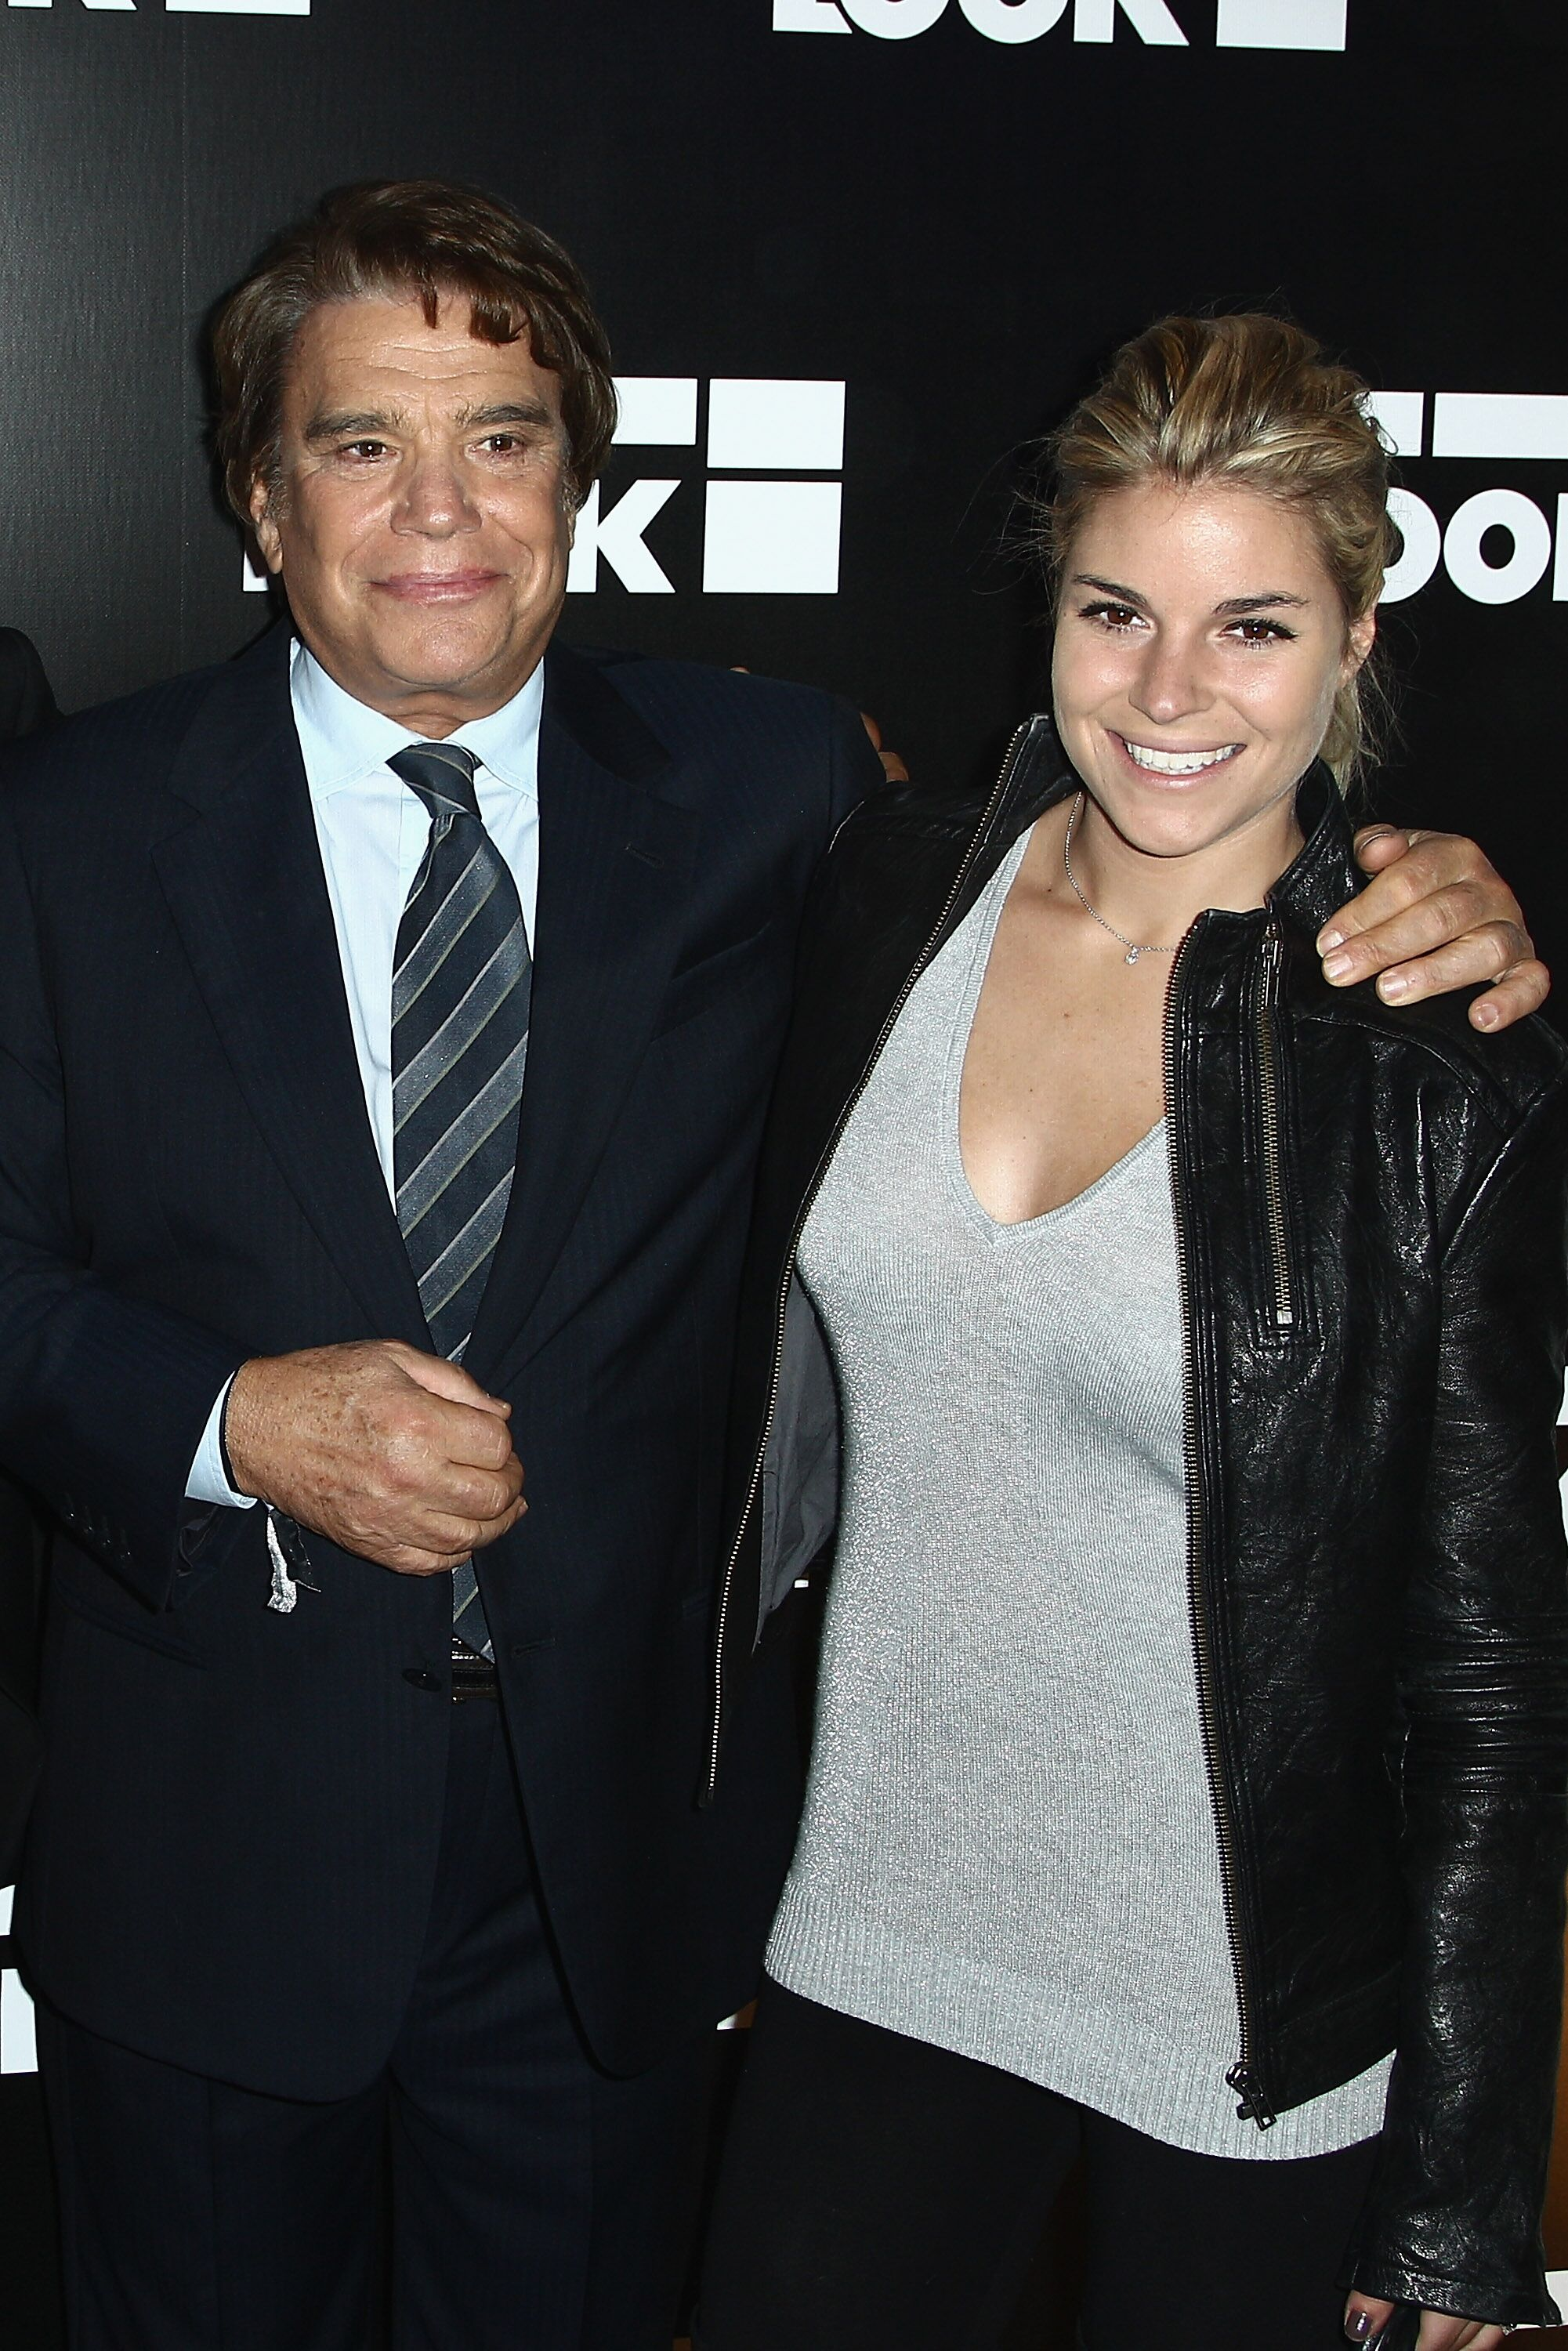 Bernard Tapie et sa fille Sophie assistent à l'ouverture de la boutique Look le 17 octobre 2011 à Paris. | Photo : Getty Images